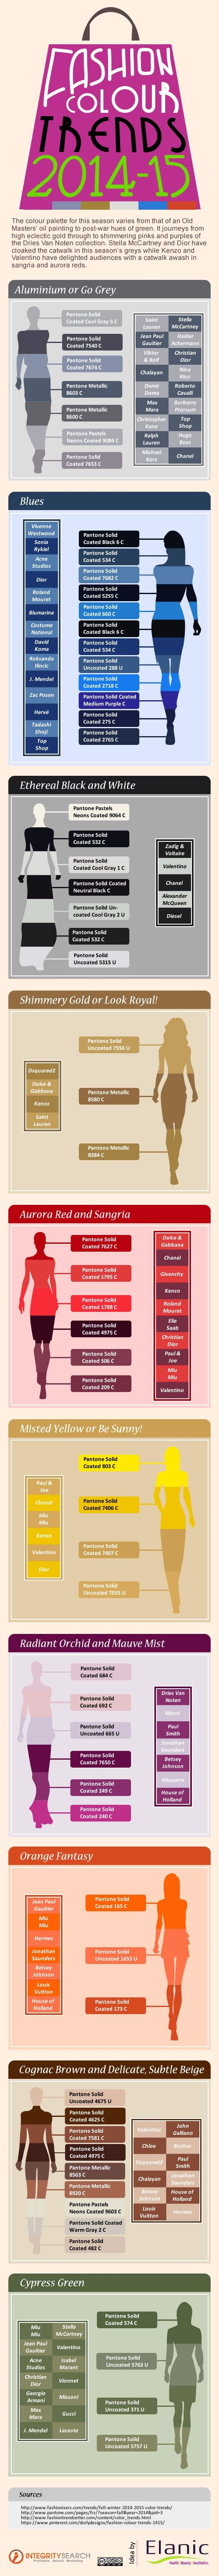 Fashion Trends 2015 Infographic